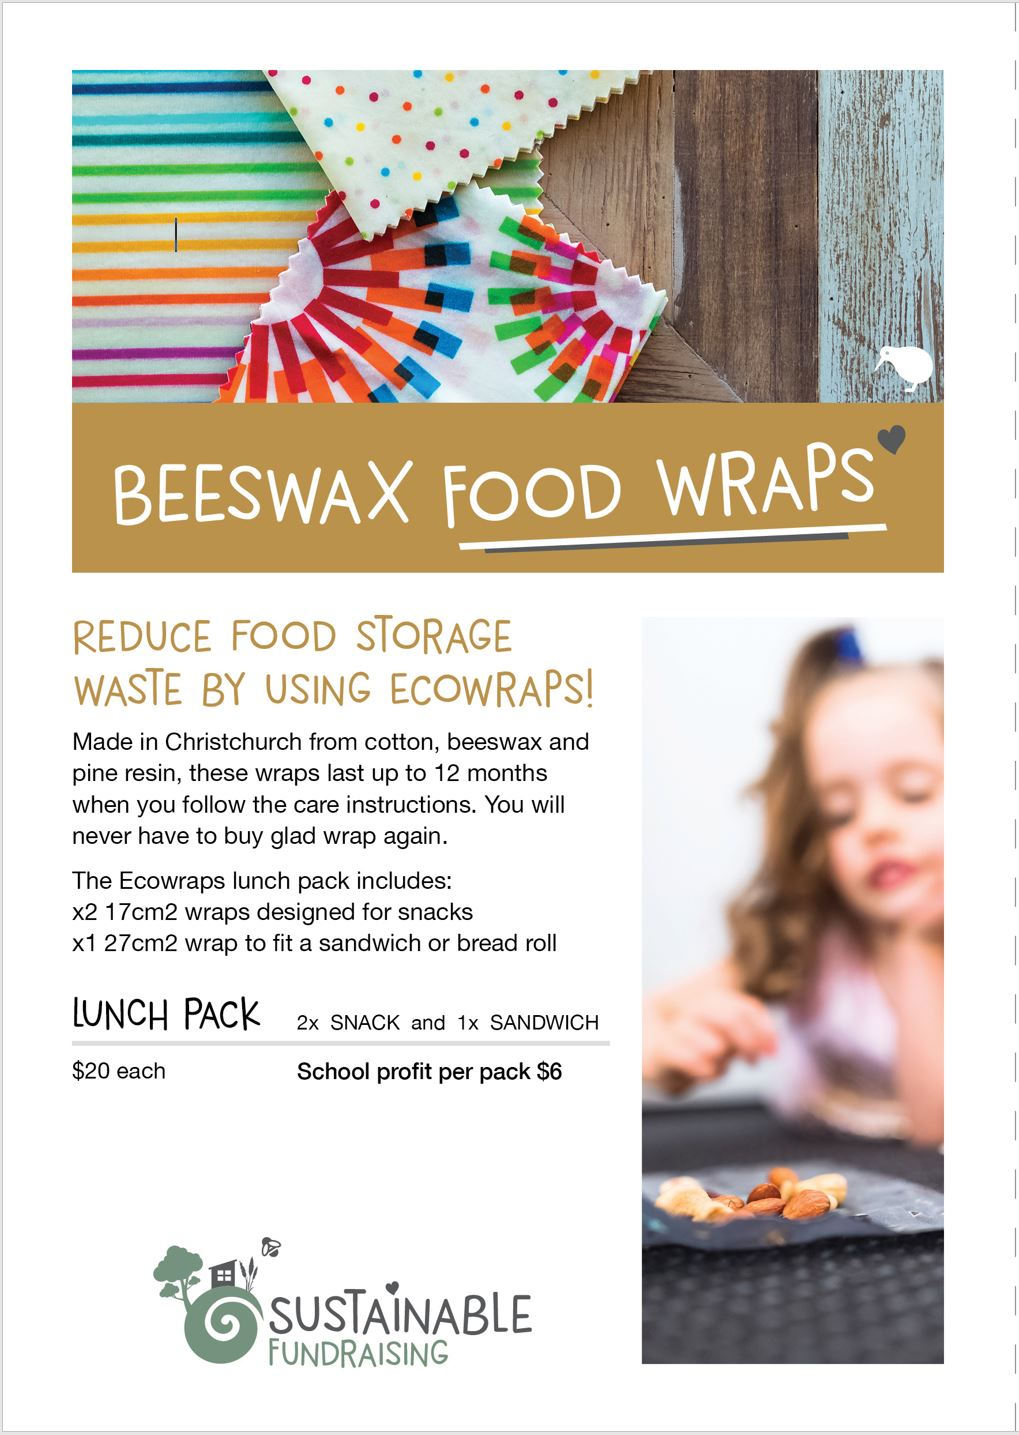 sf-a5-beeswax-food-wrap-a5.jpg